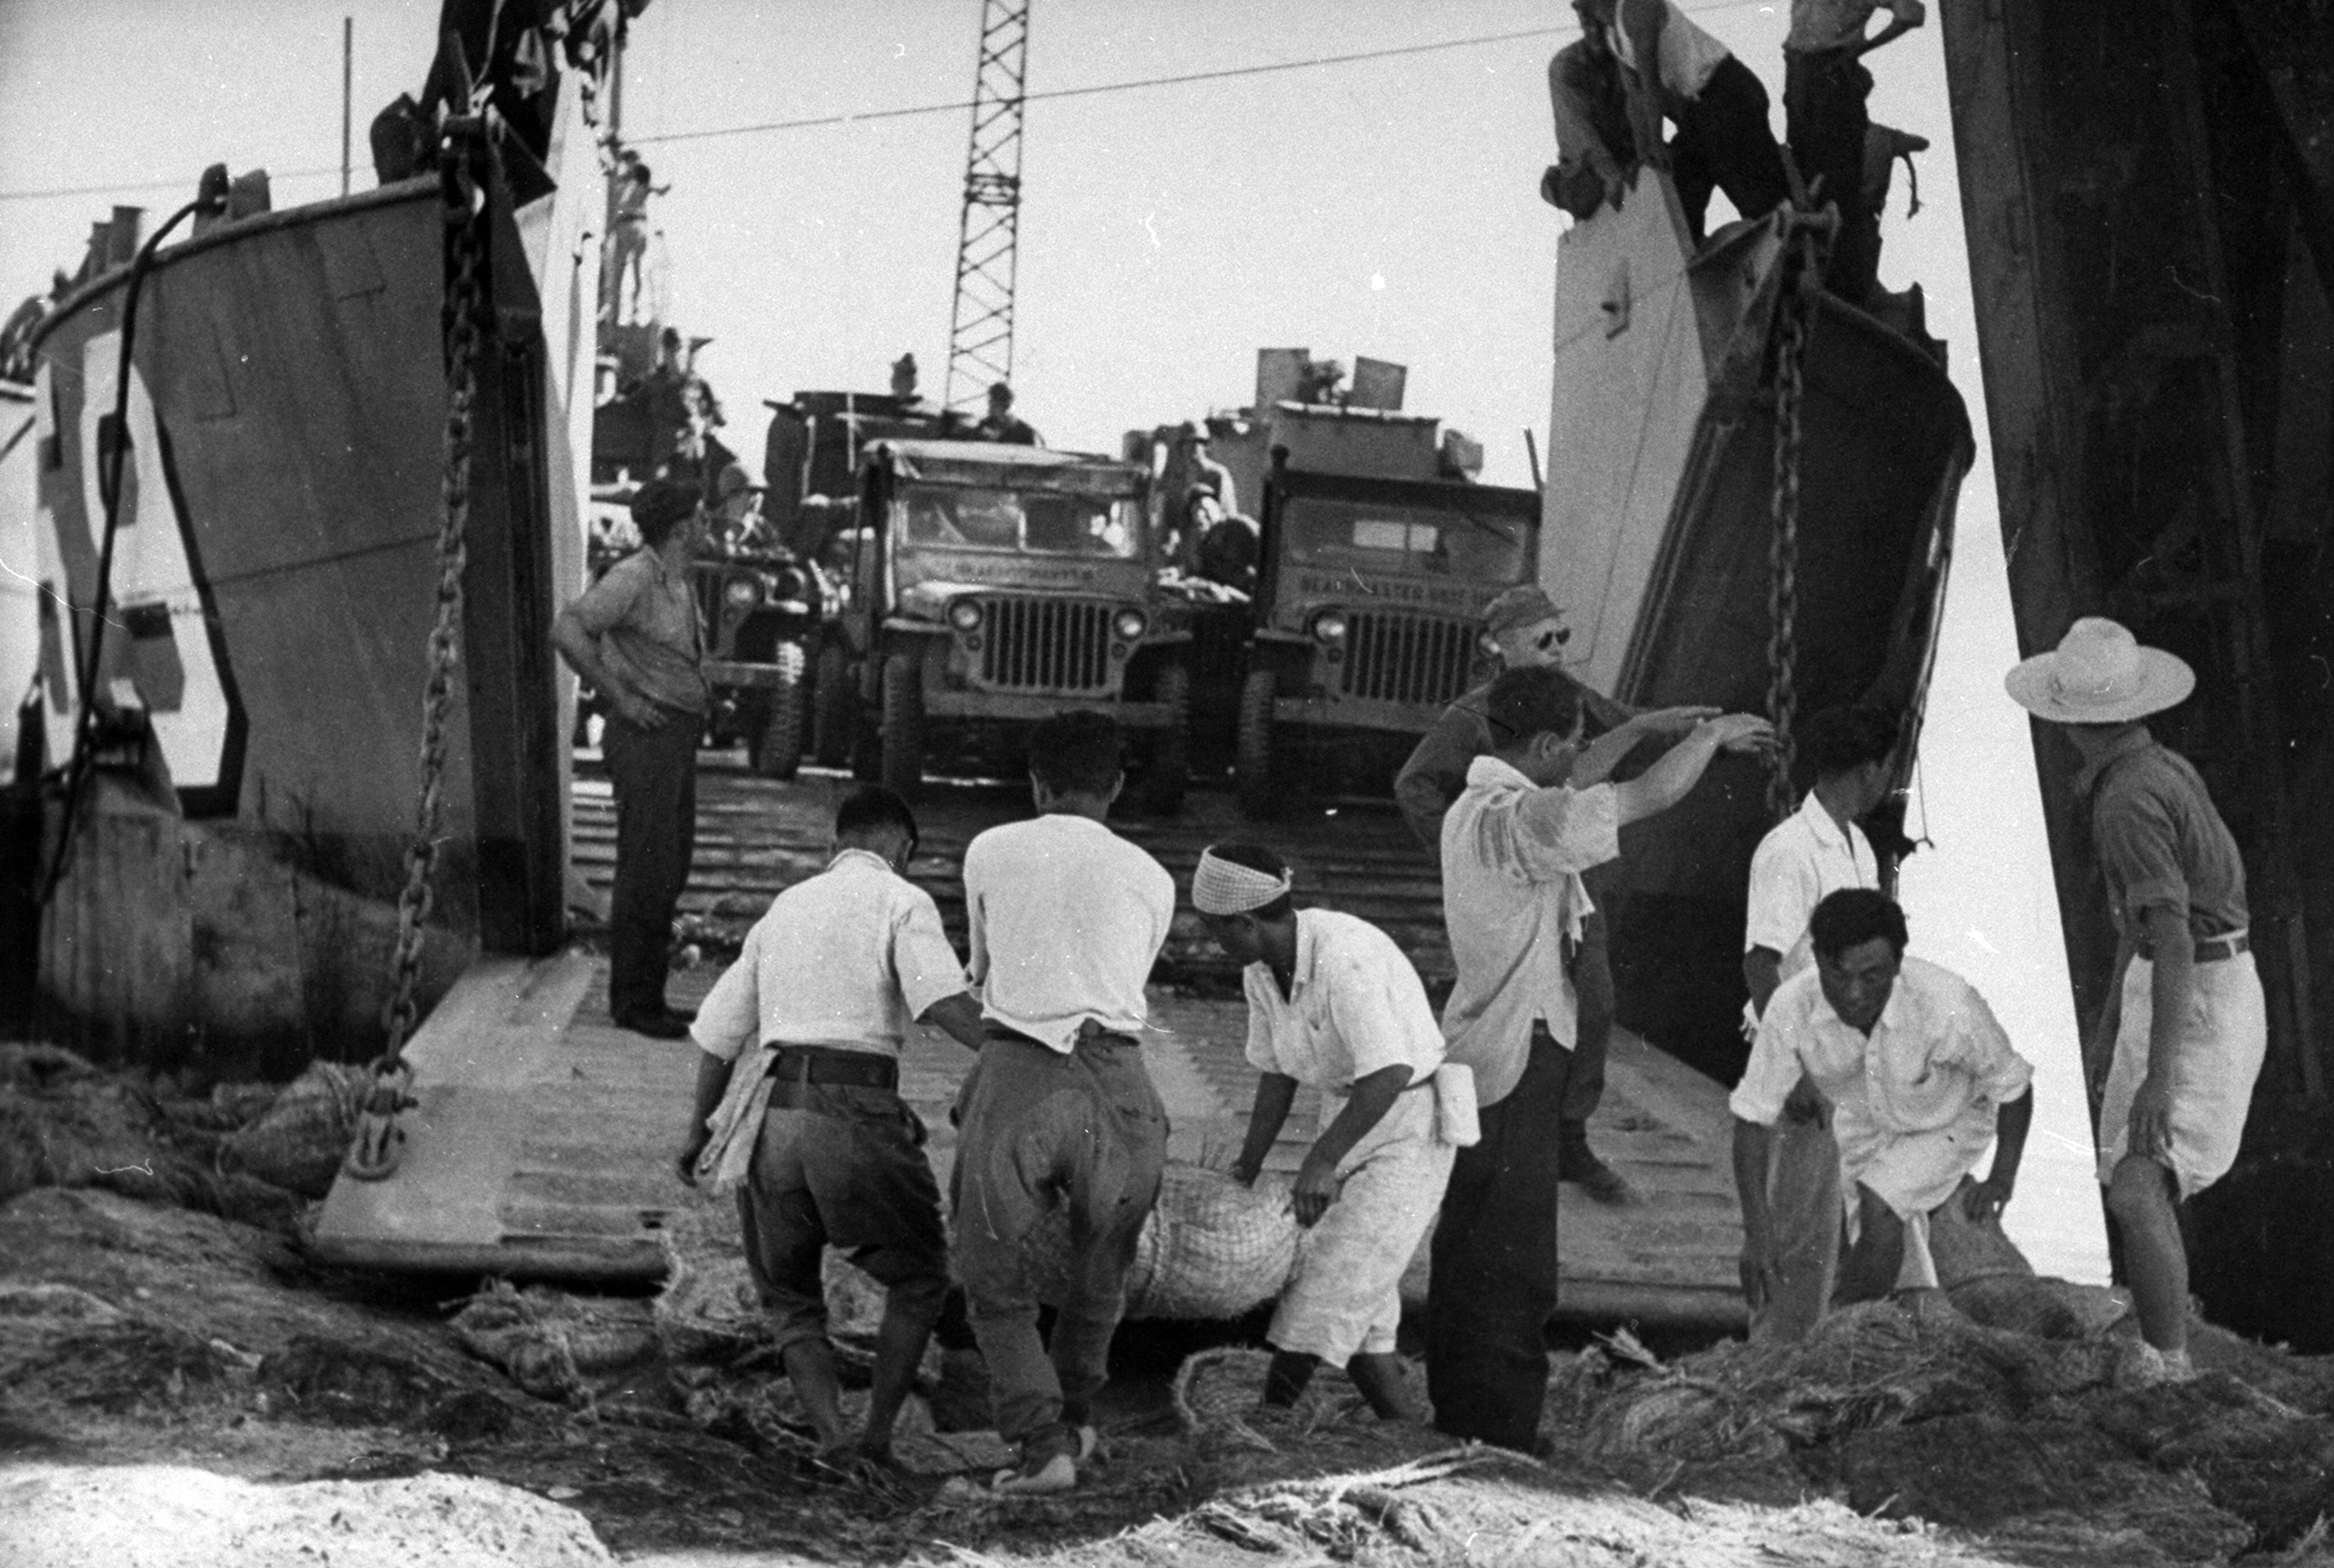 <b>Caption from LIFE.</b> Jeeps are unloaded from LCT with help of Koreans. They also helped build airbase near P'ohang-dong where fighters operated even before the landing.